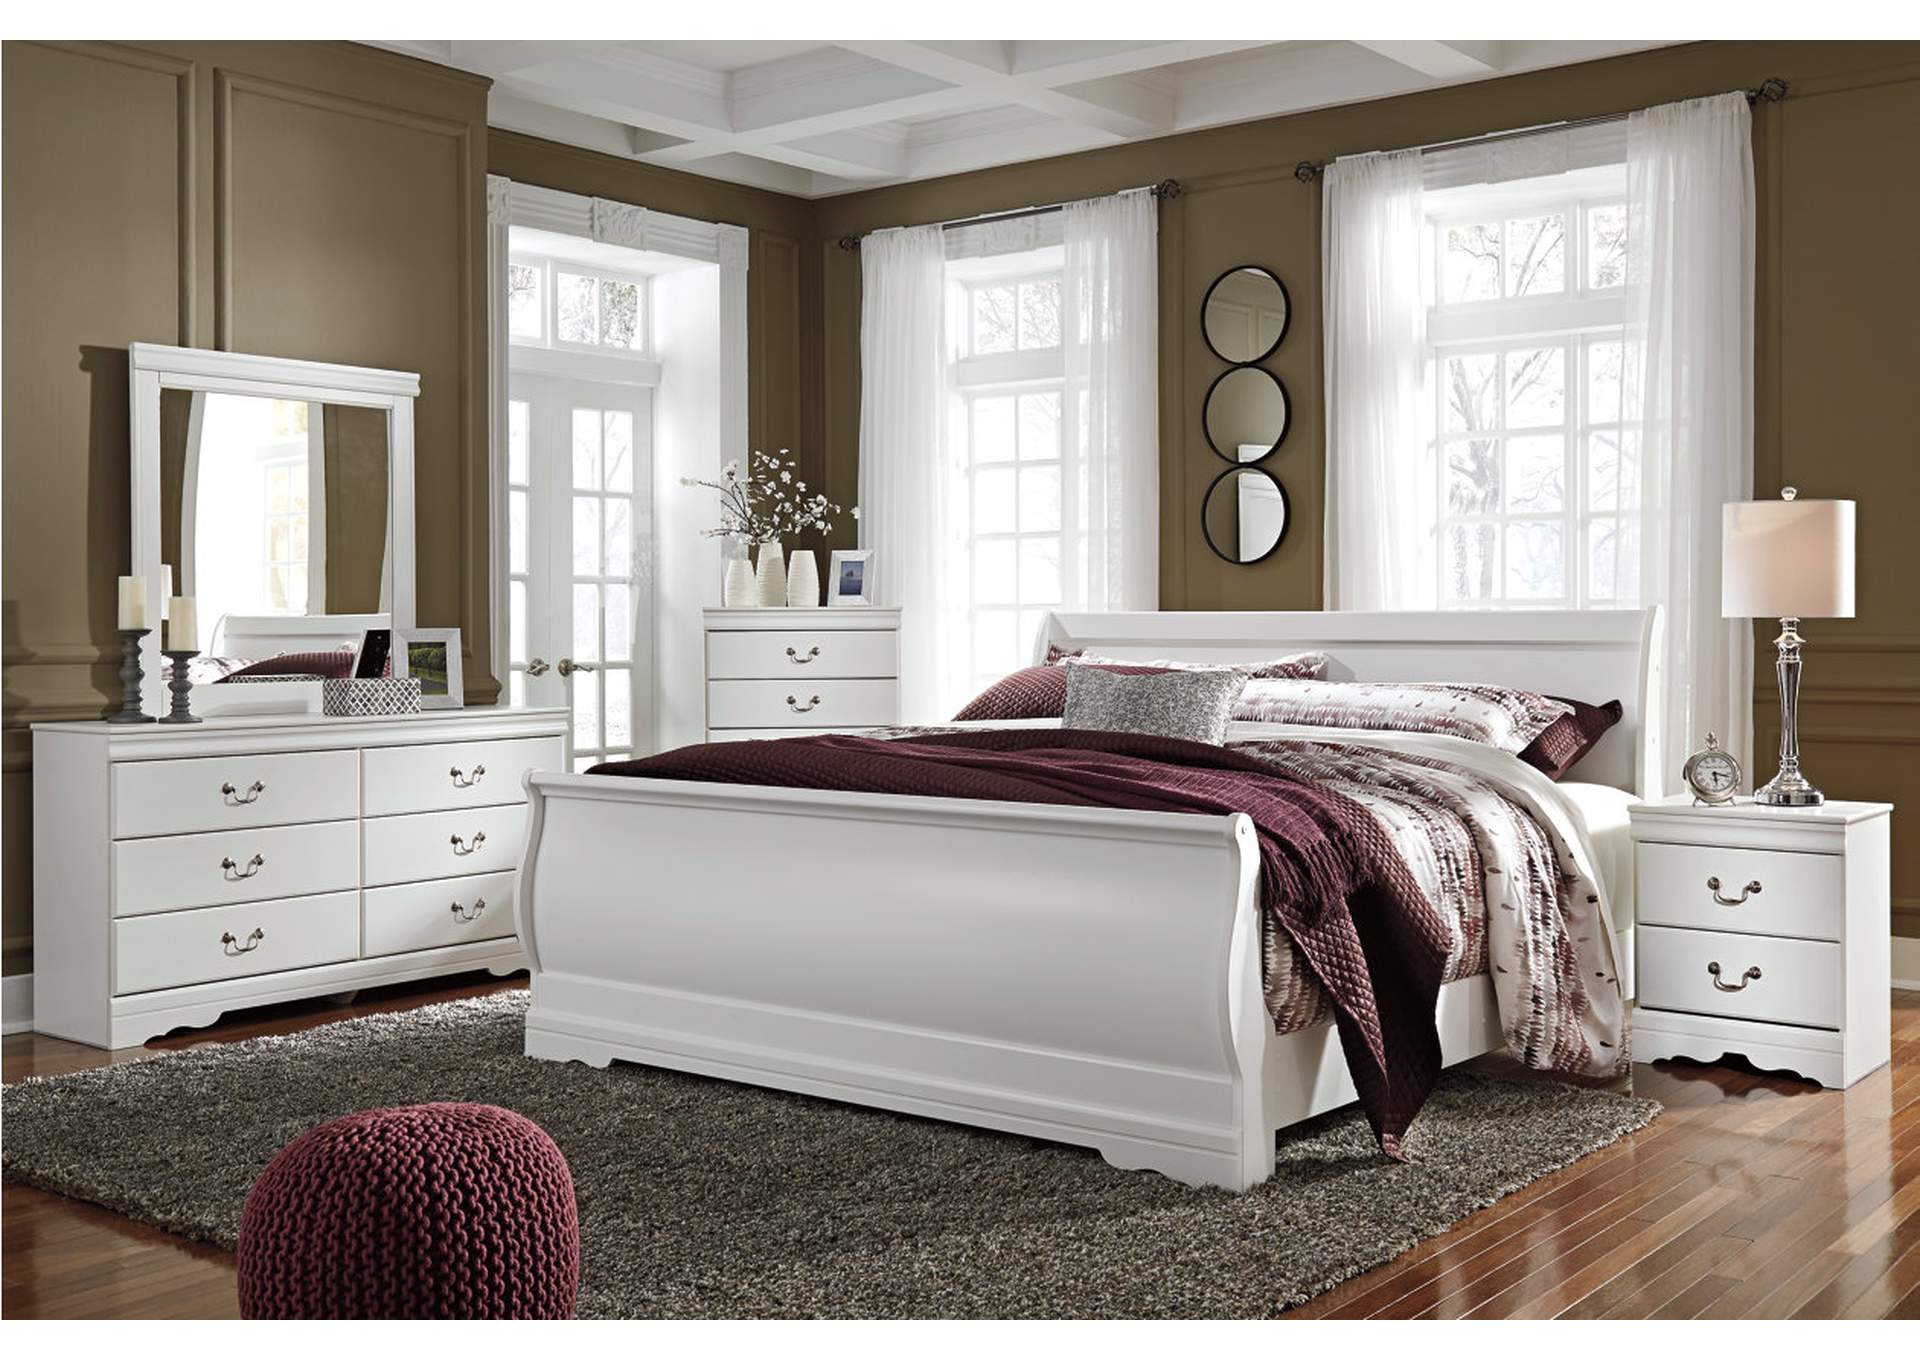 Anarasia White King Sleigh Bed w/Dresser, Mirror, Drawer Chest & Nightstand,Signature Design By Ashley